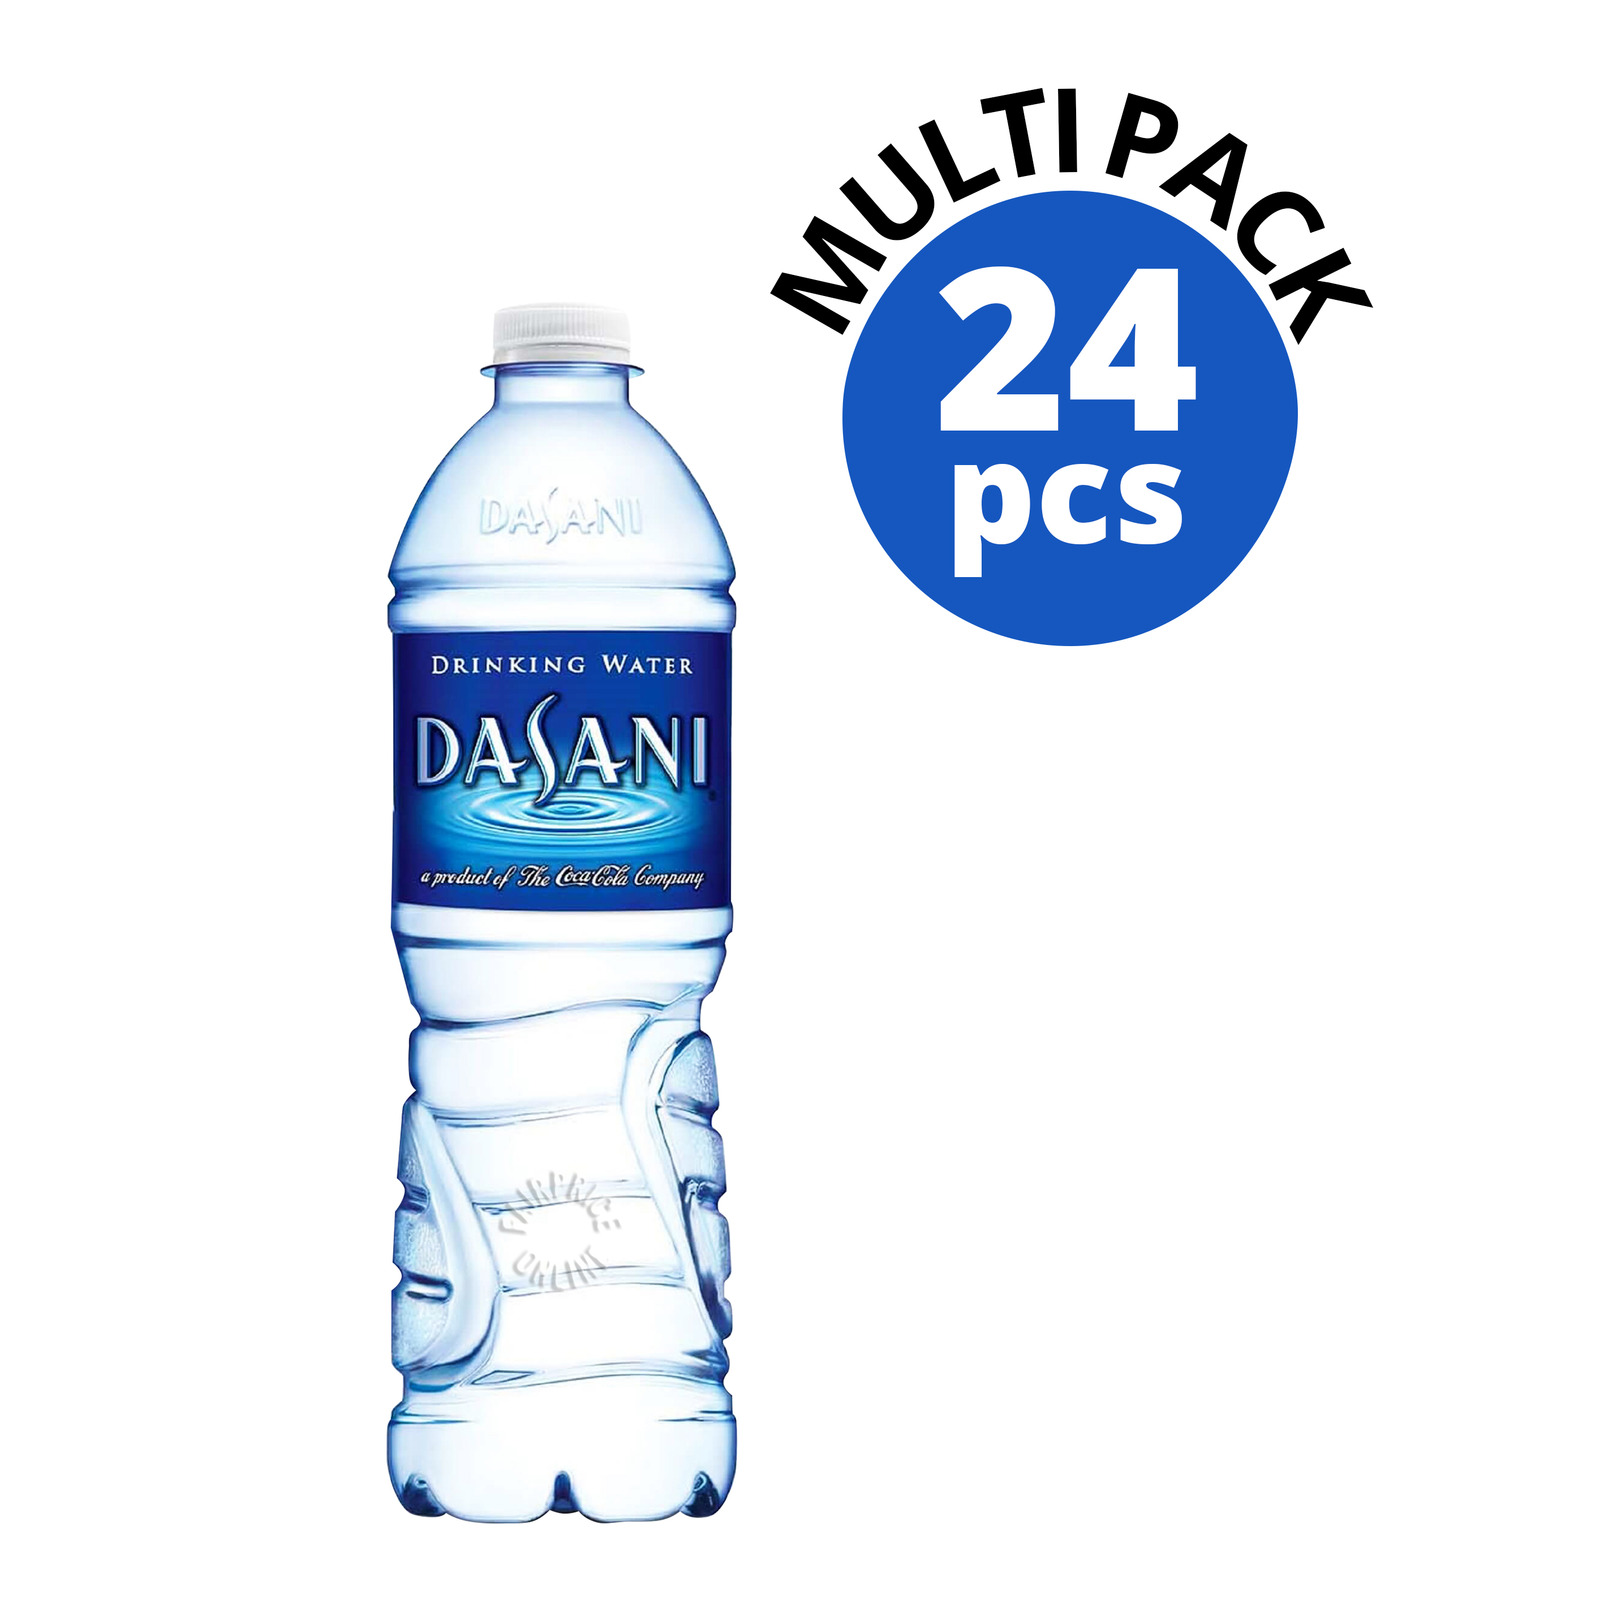 DASANI Drinking Water 24sX600ml